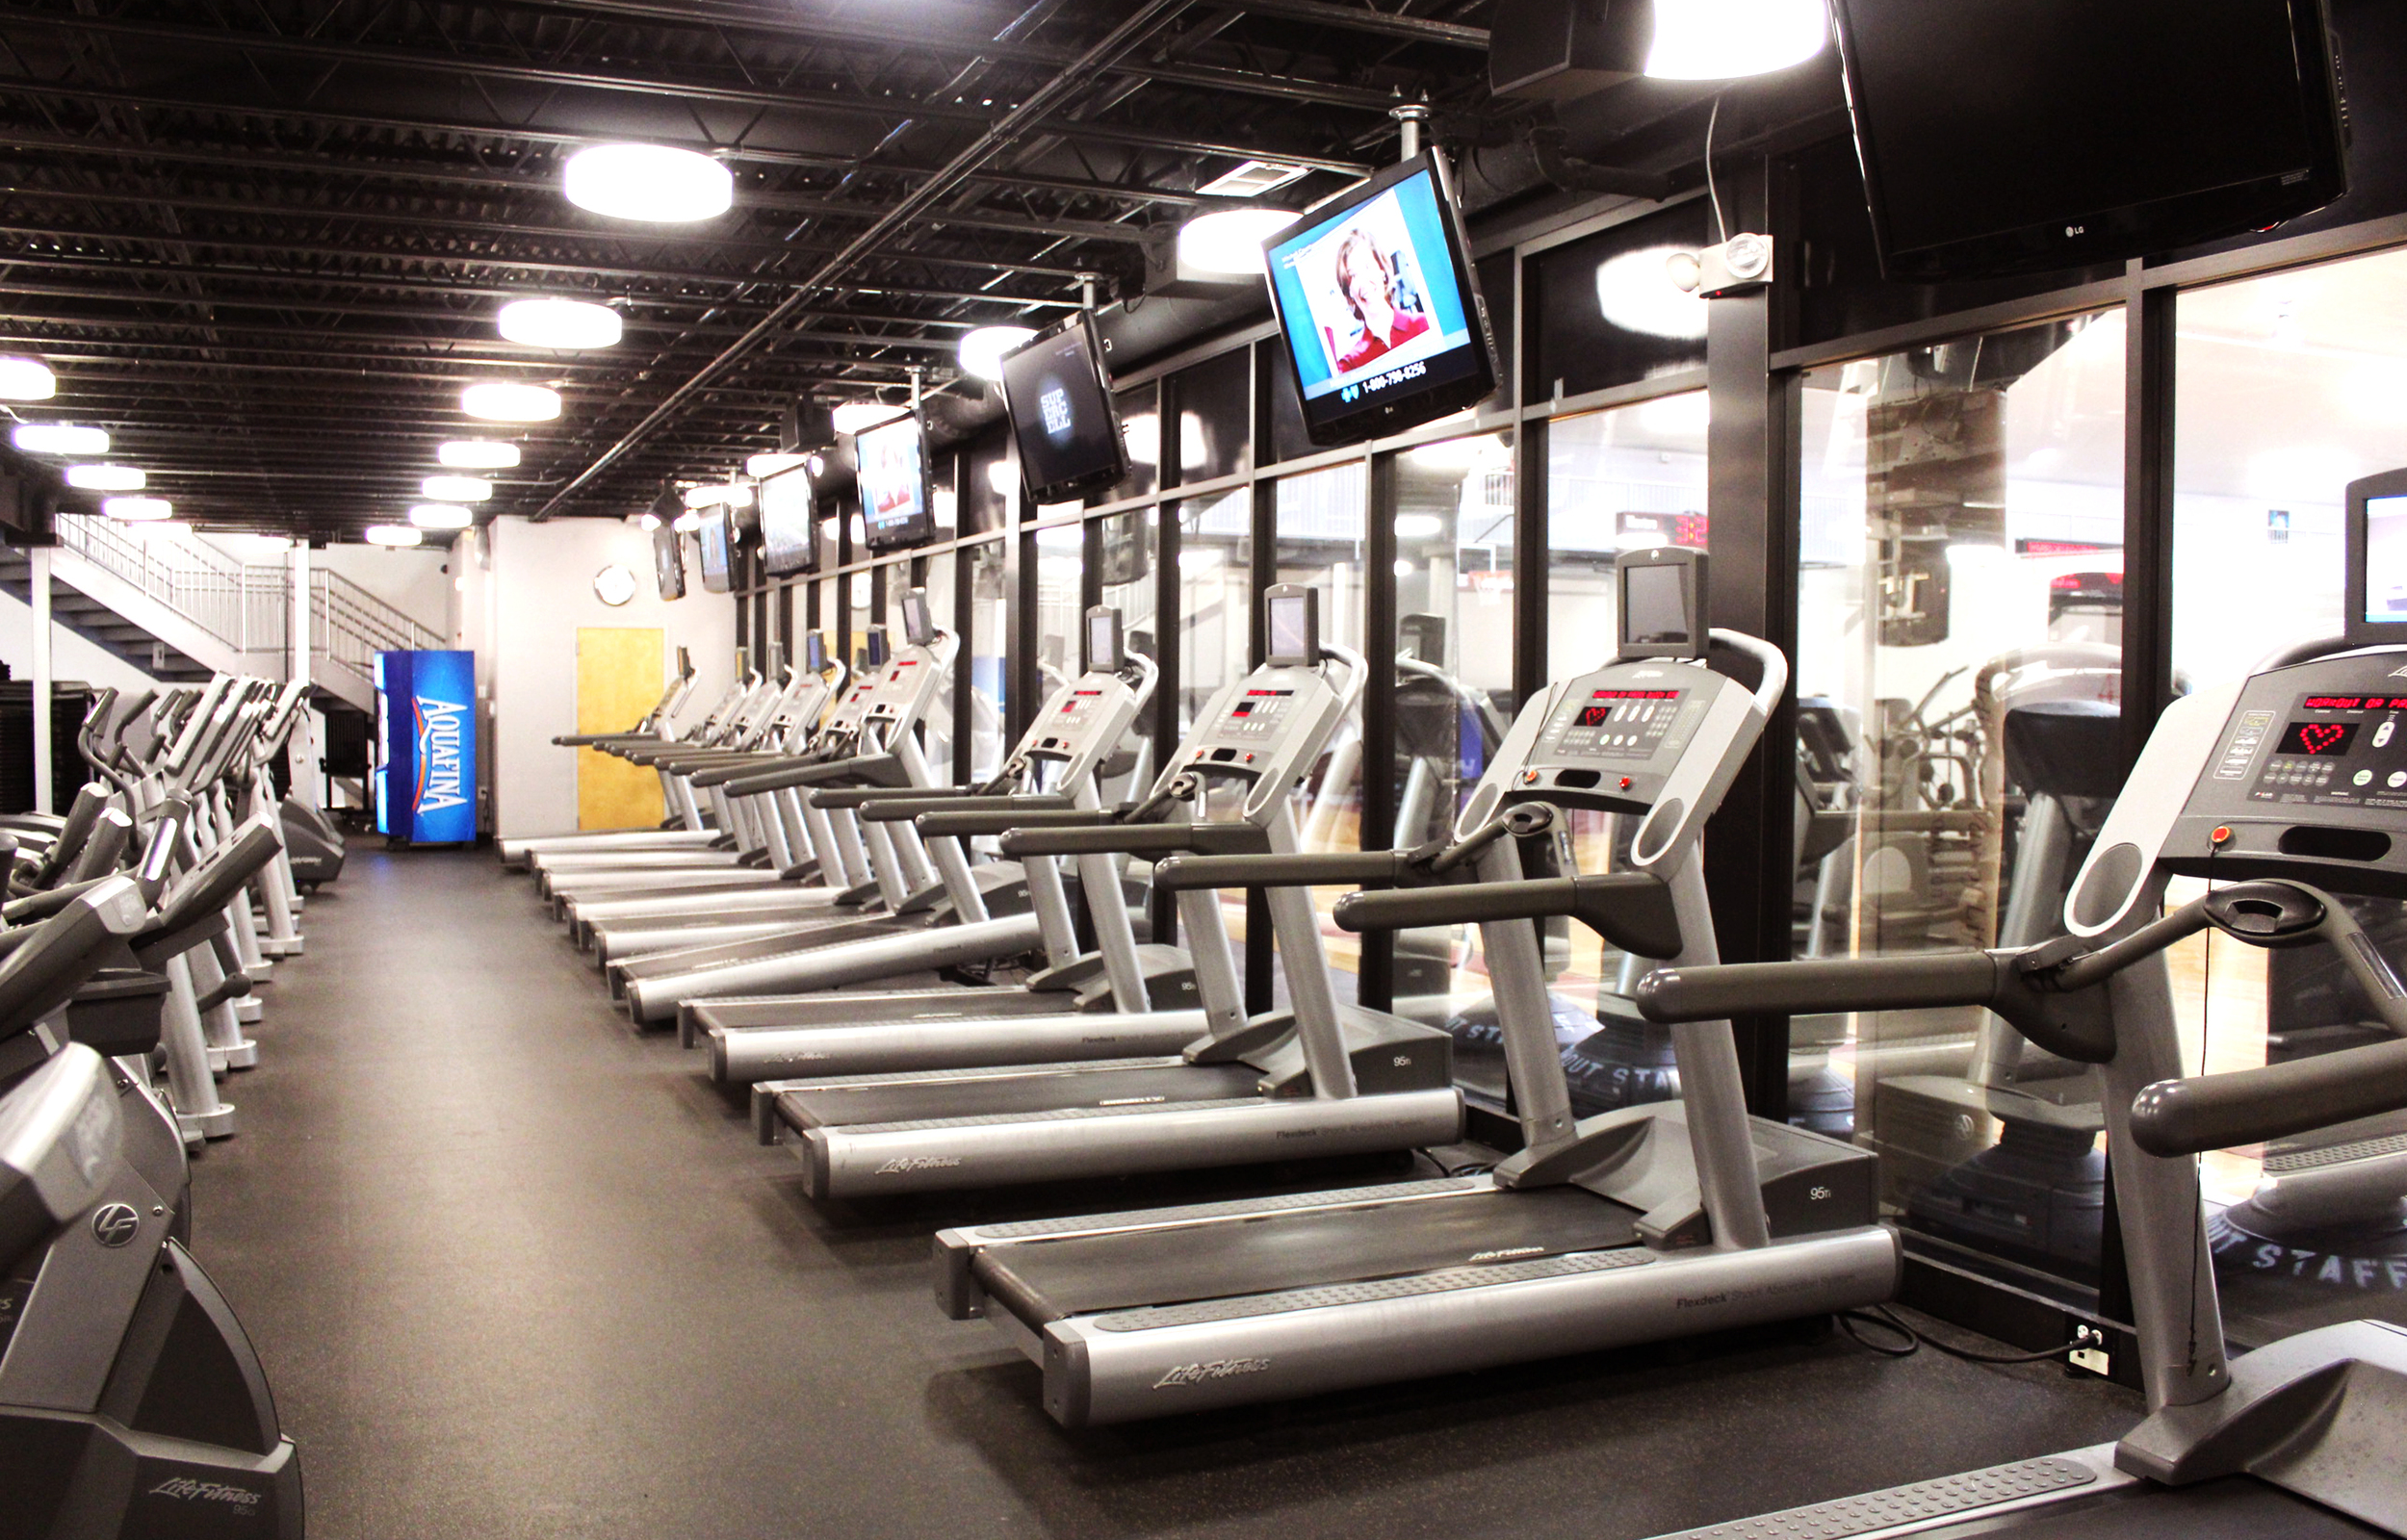 Cardio Room  - featuring treadmills, bikes, stair climbers, and elipticals